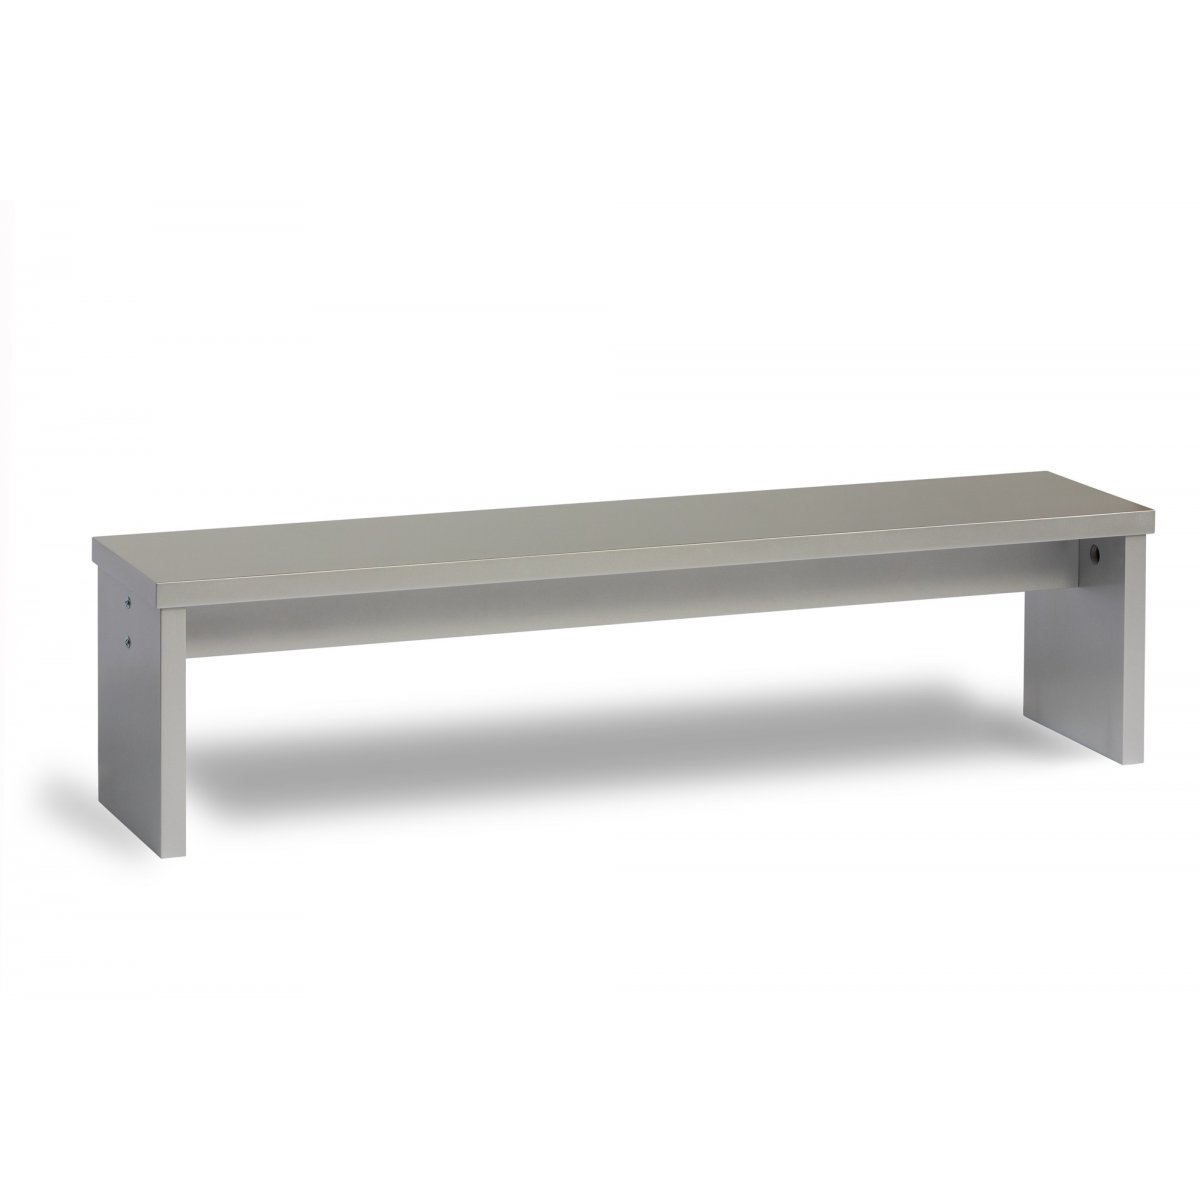 banc gris inox brillant pour d 39 un billard table a manger. Black Bedroom Furniture Sets. Home Design Ideas